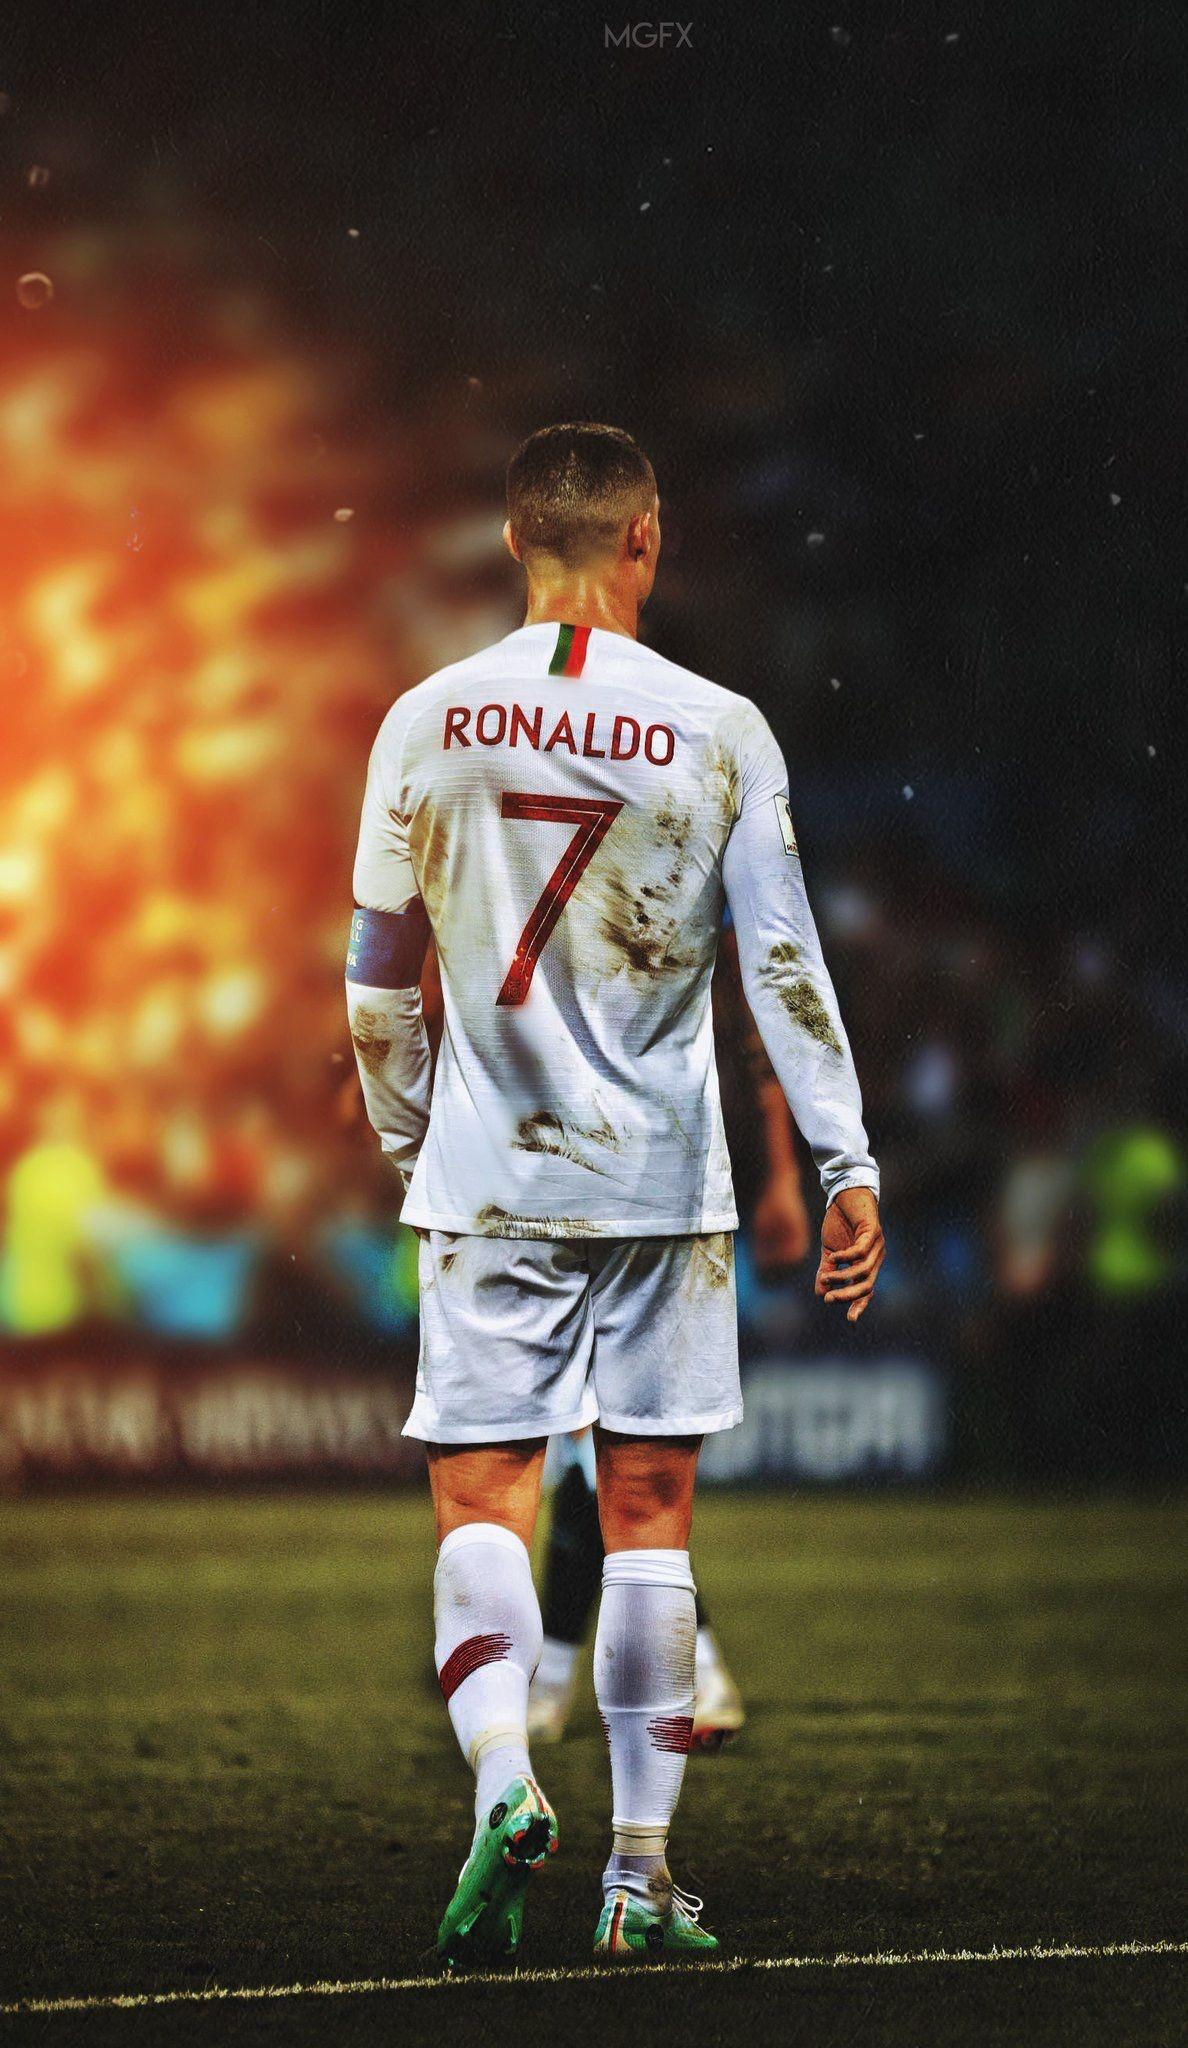 Cristiano ronaldo 2019 wallpapers wallpaper cave - C ronaldo wallpaper portugal ...